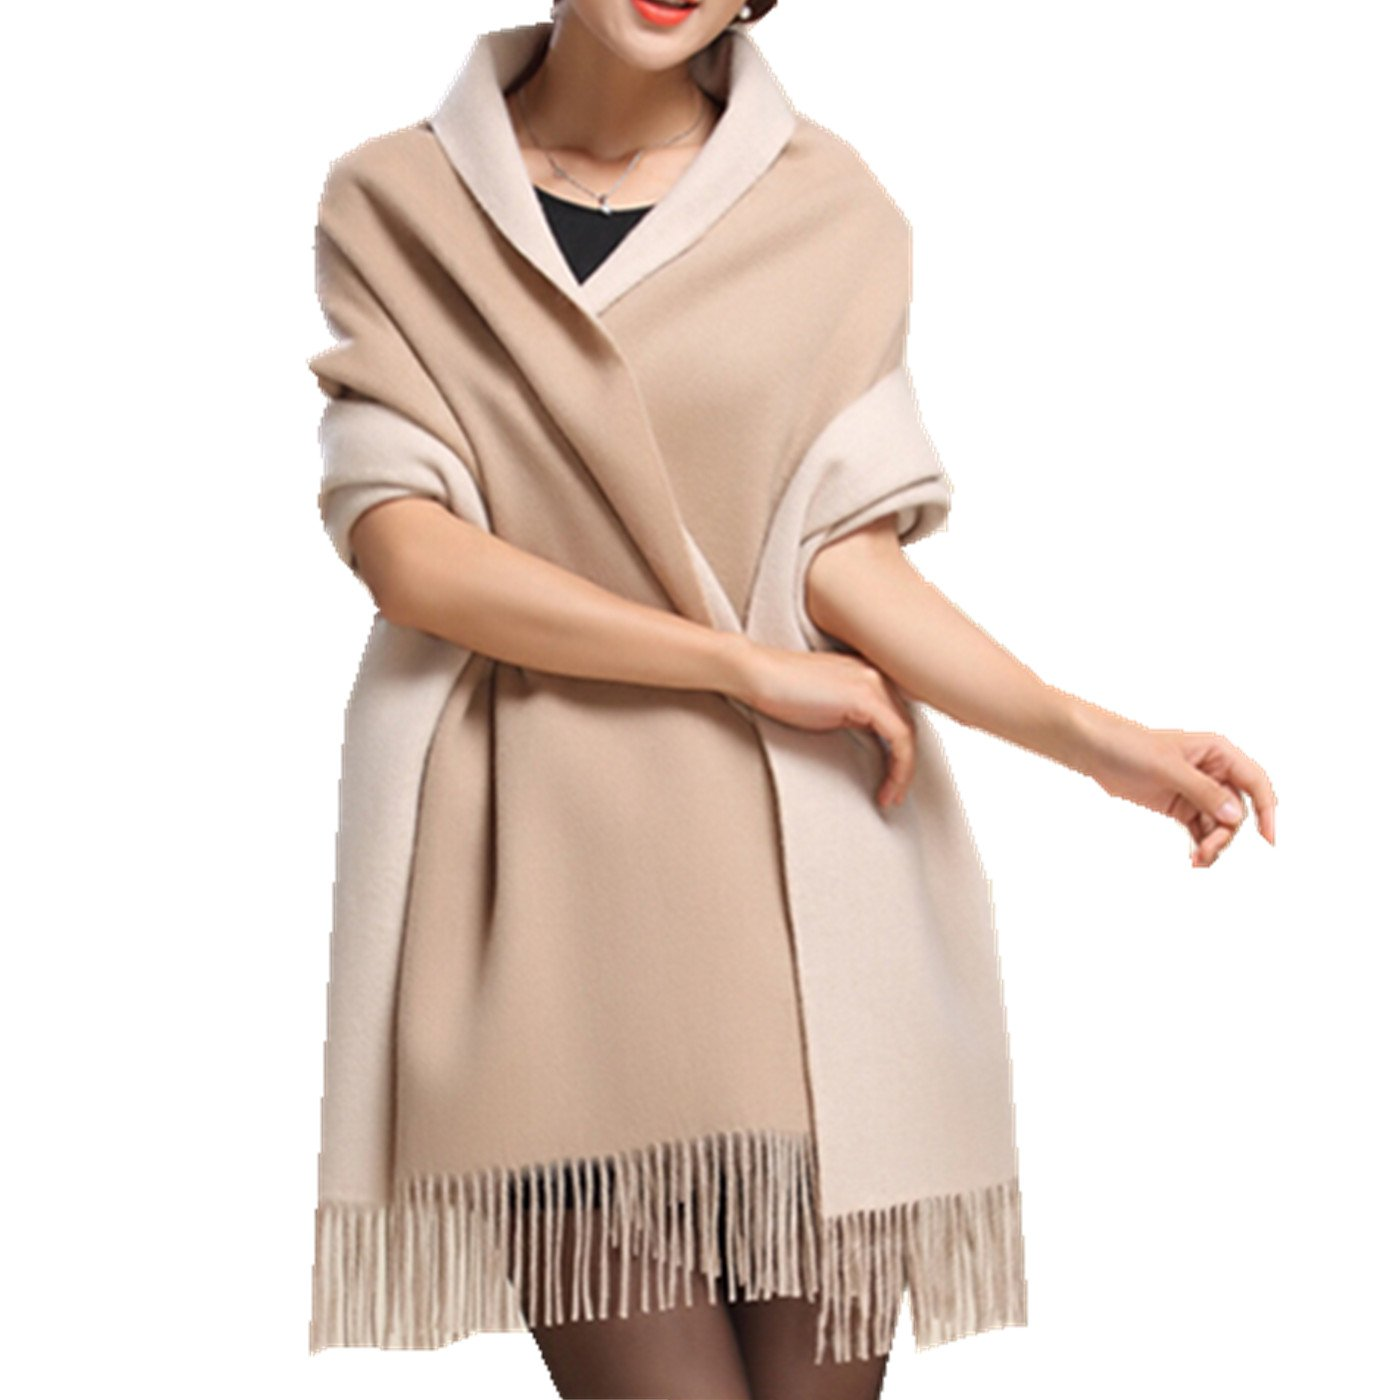 Gift Box Saferin Large 78''x28'' Women Soft Cashmere Wool Wraps Shawls Stole Scarf Double-Sided Thick Warm Winter (Khaki Beige) by SAFERIN